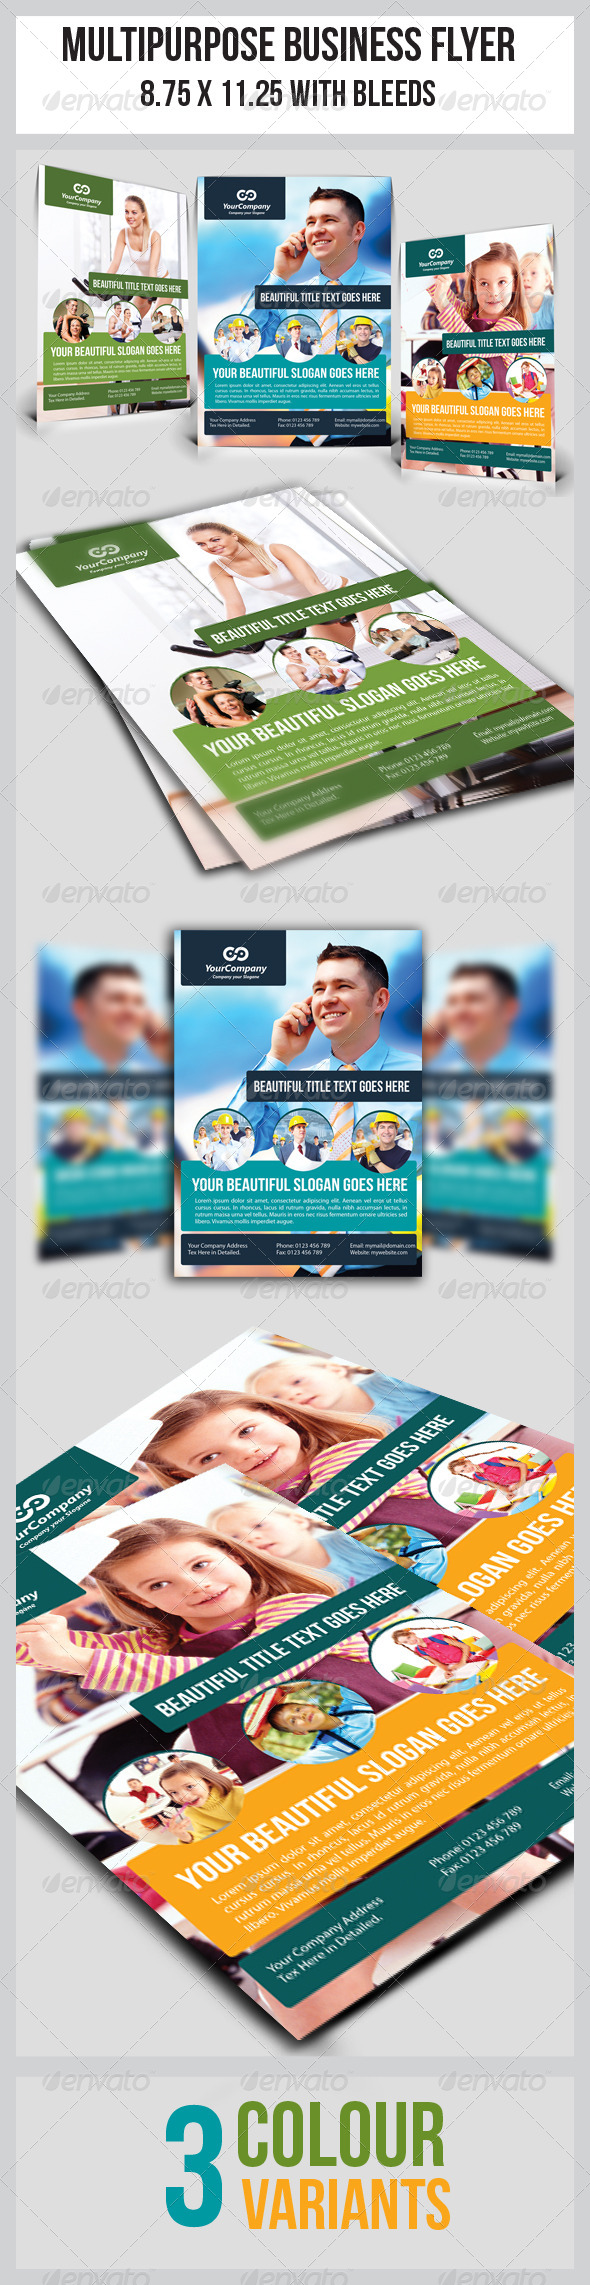 GraphicRiver Multipurpose Business Flyer 12 3786879